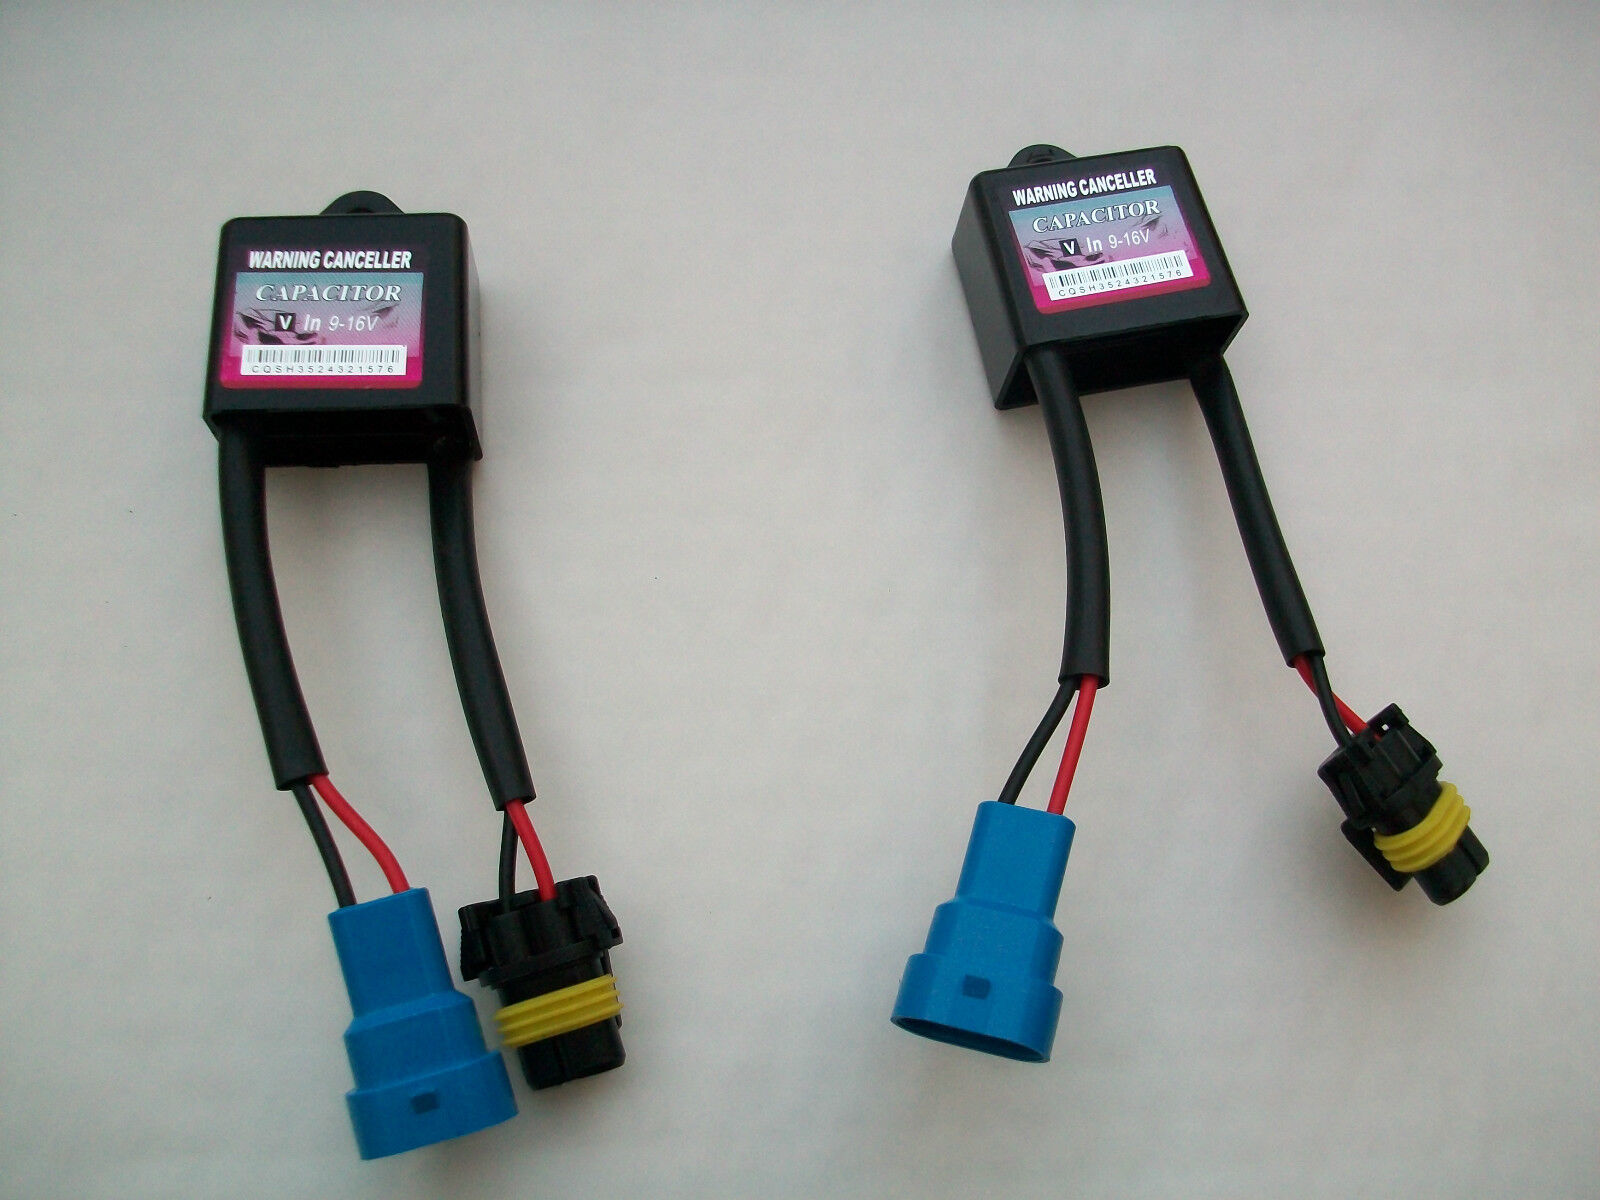 Details about CANBUS ERROR WARNING CANCELLERS FOR HID XENON CONVERSION KIT  FOR BMW E46 E39 E60